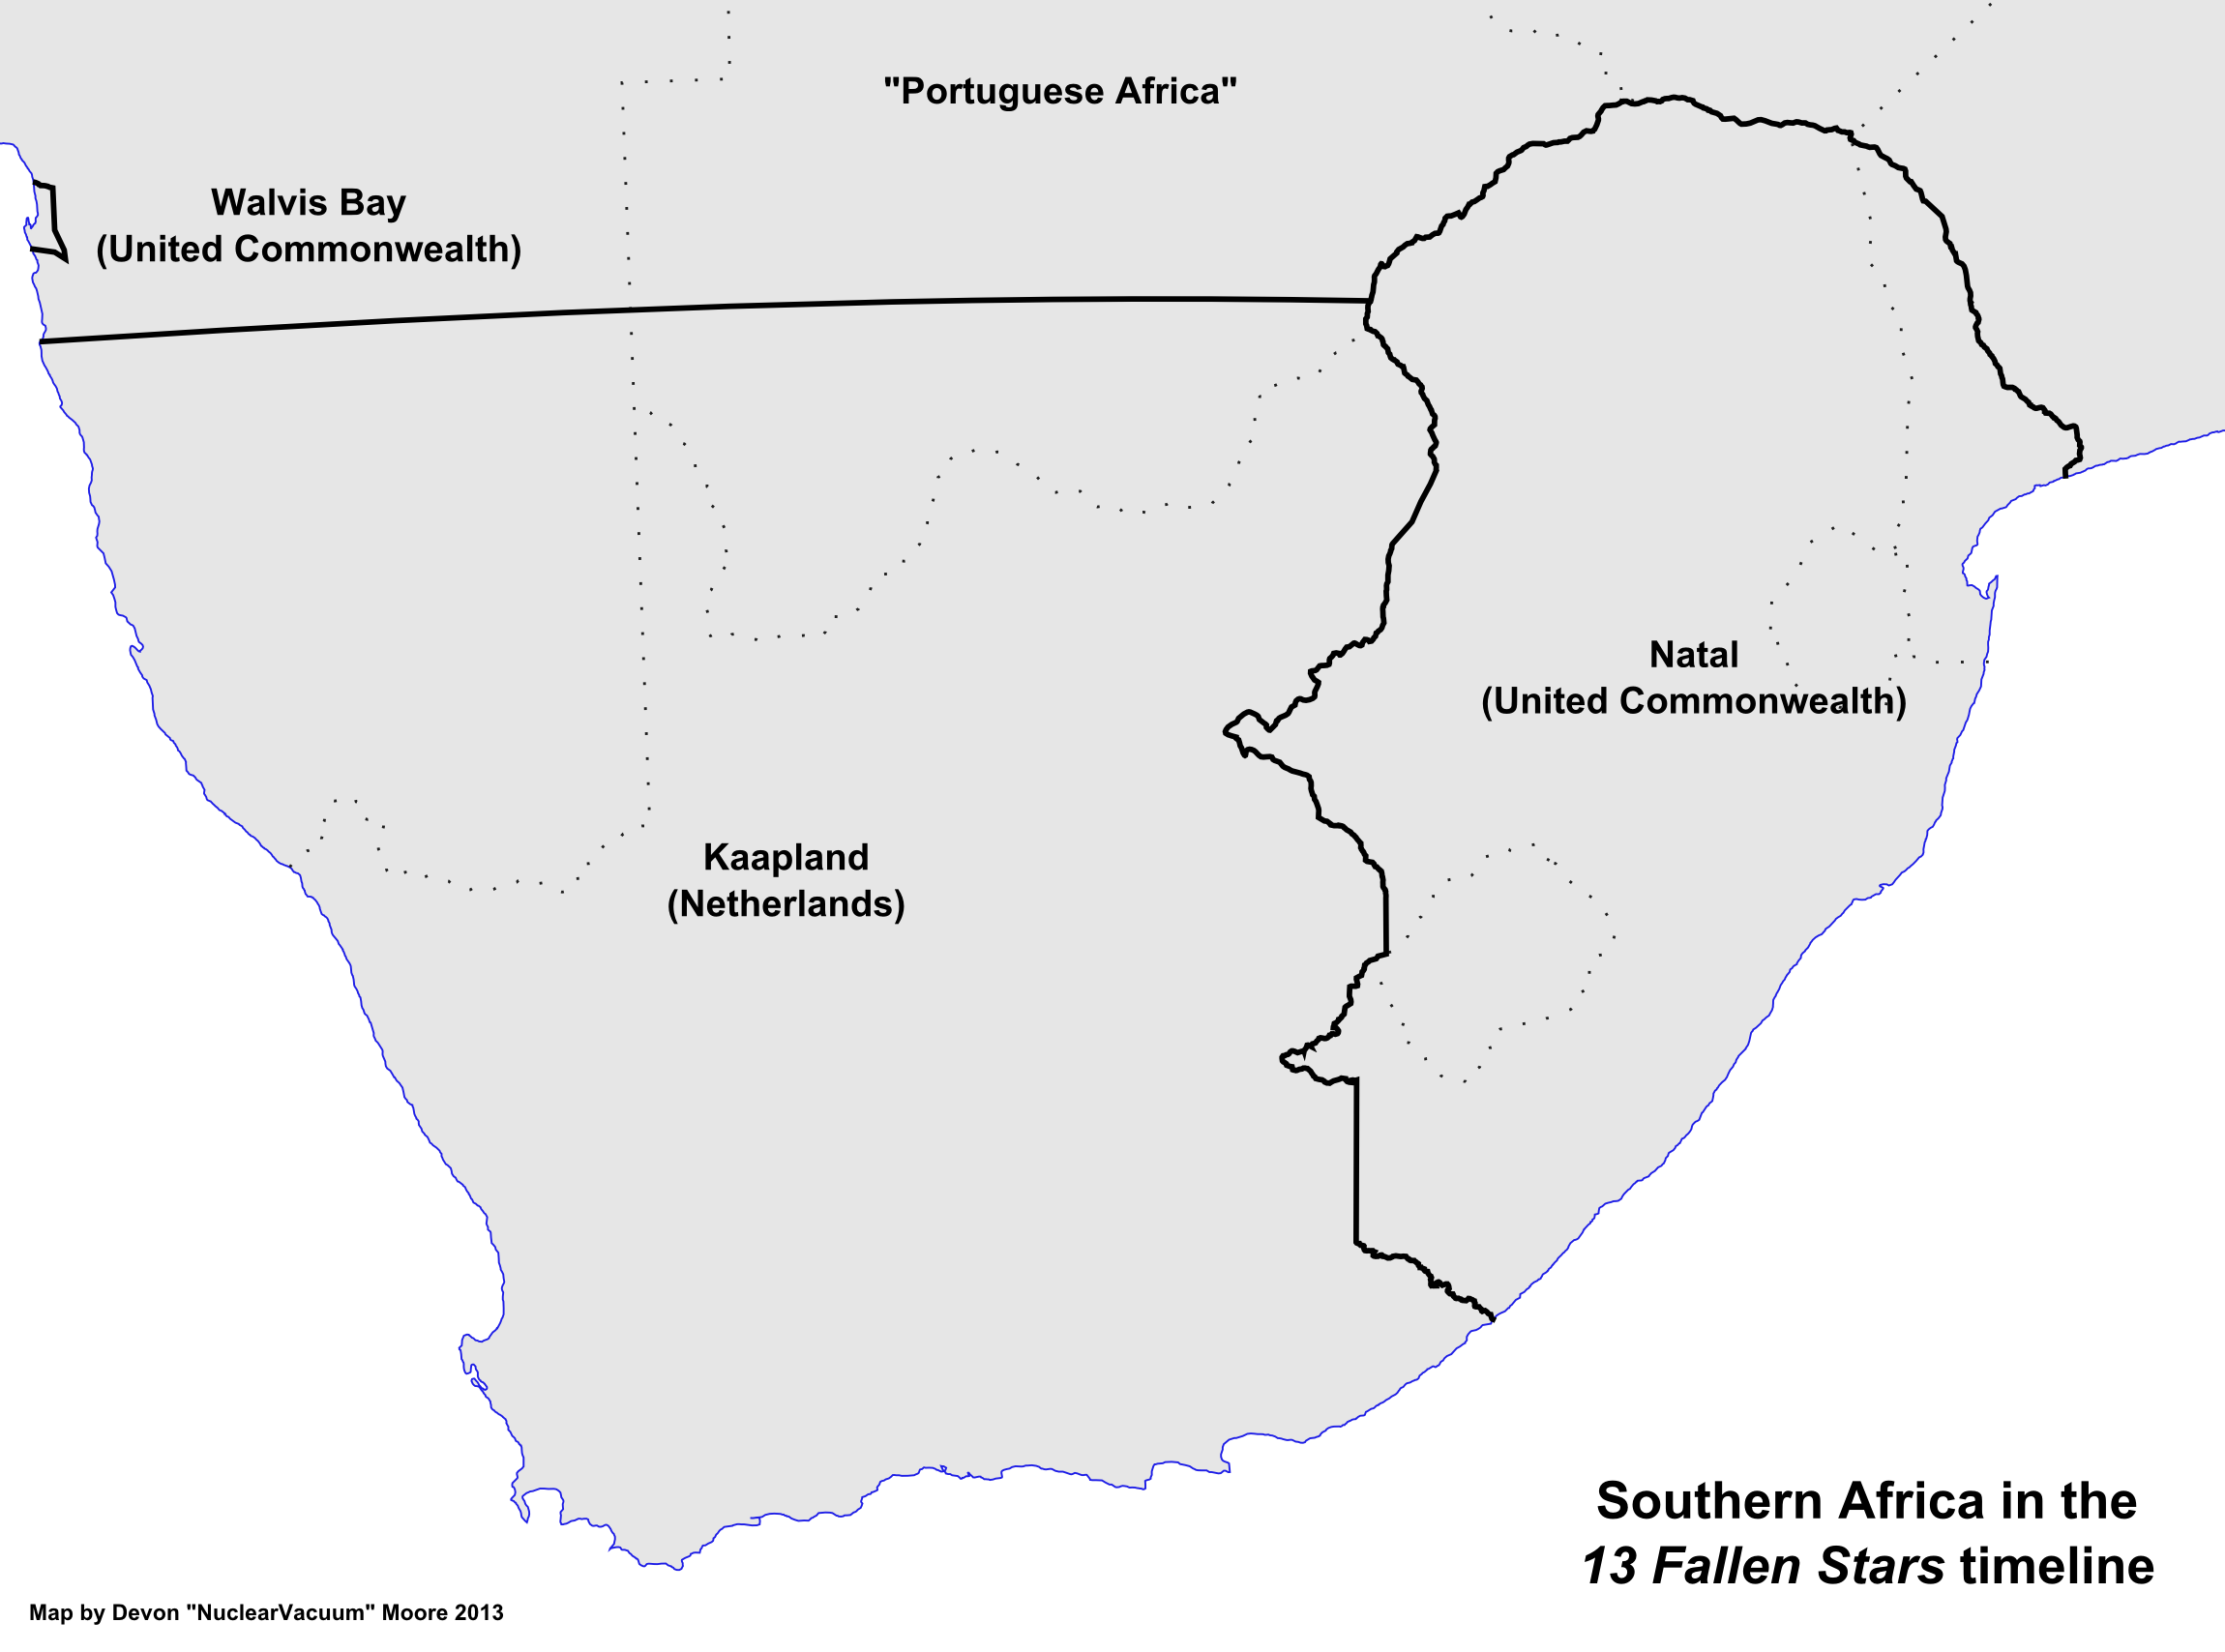 Map of Southern Africa (13 Fallen Stars).png